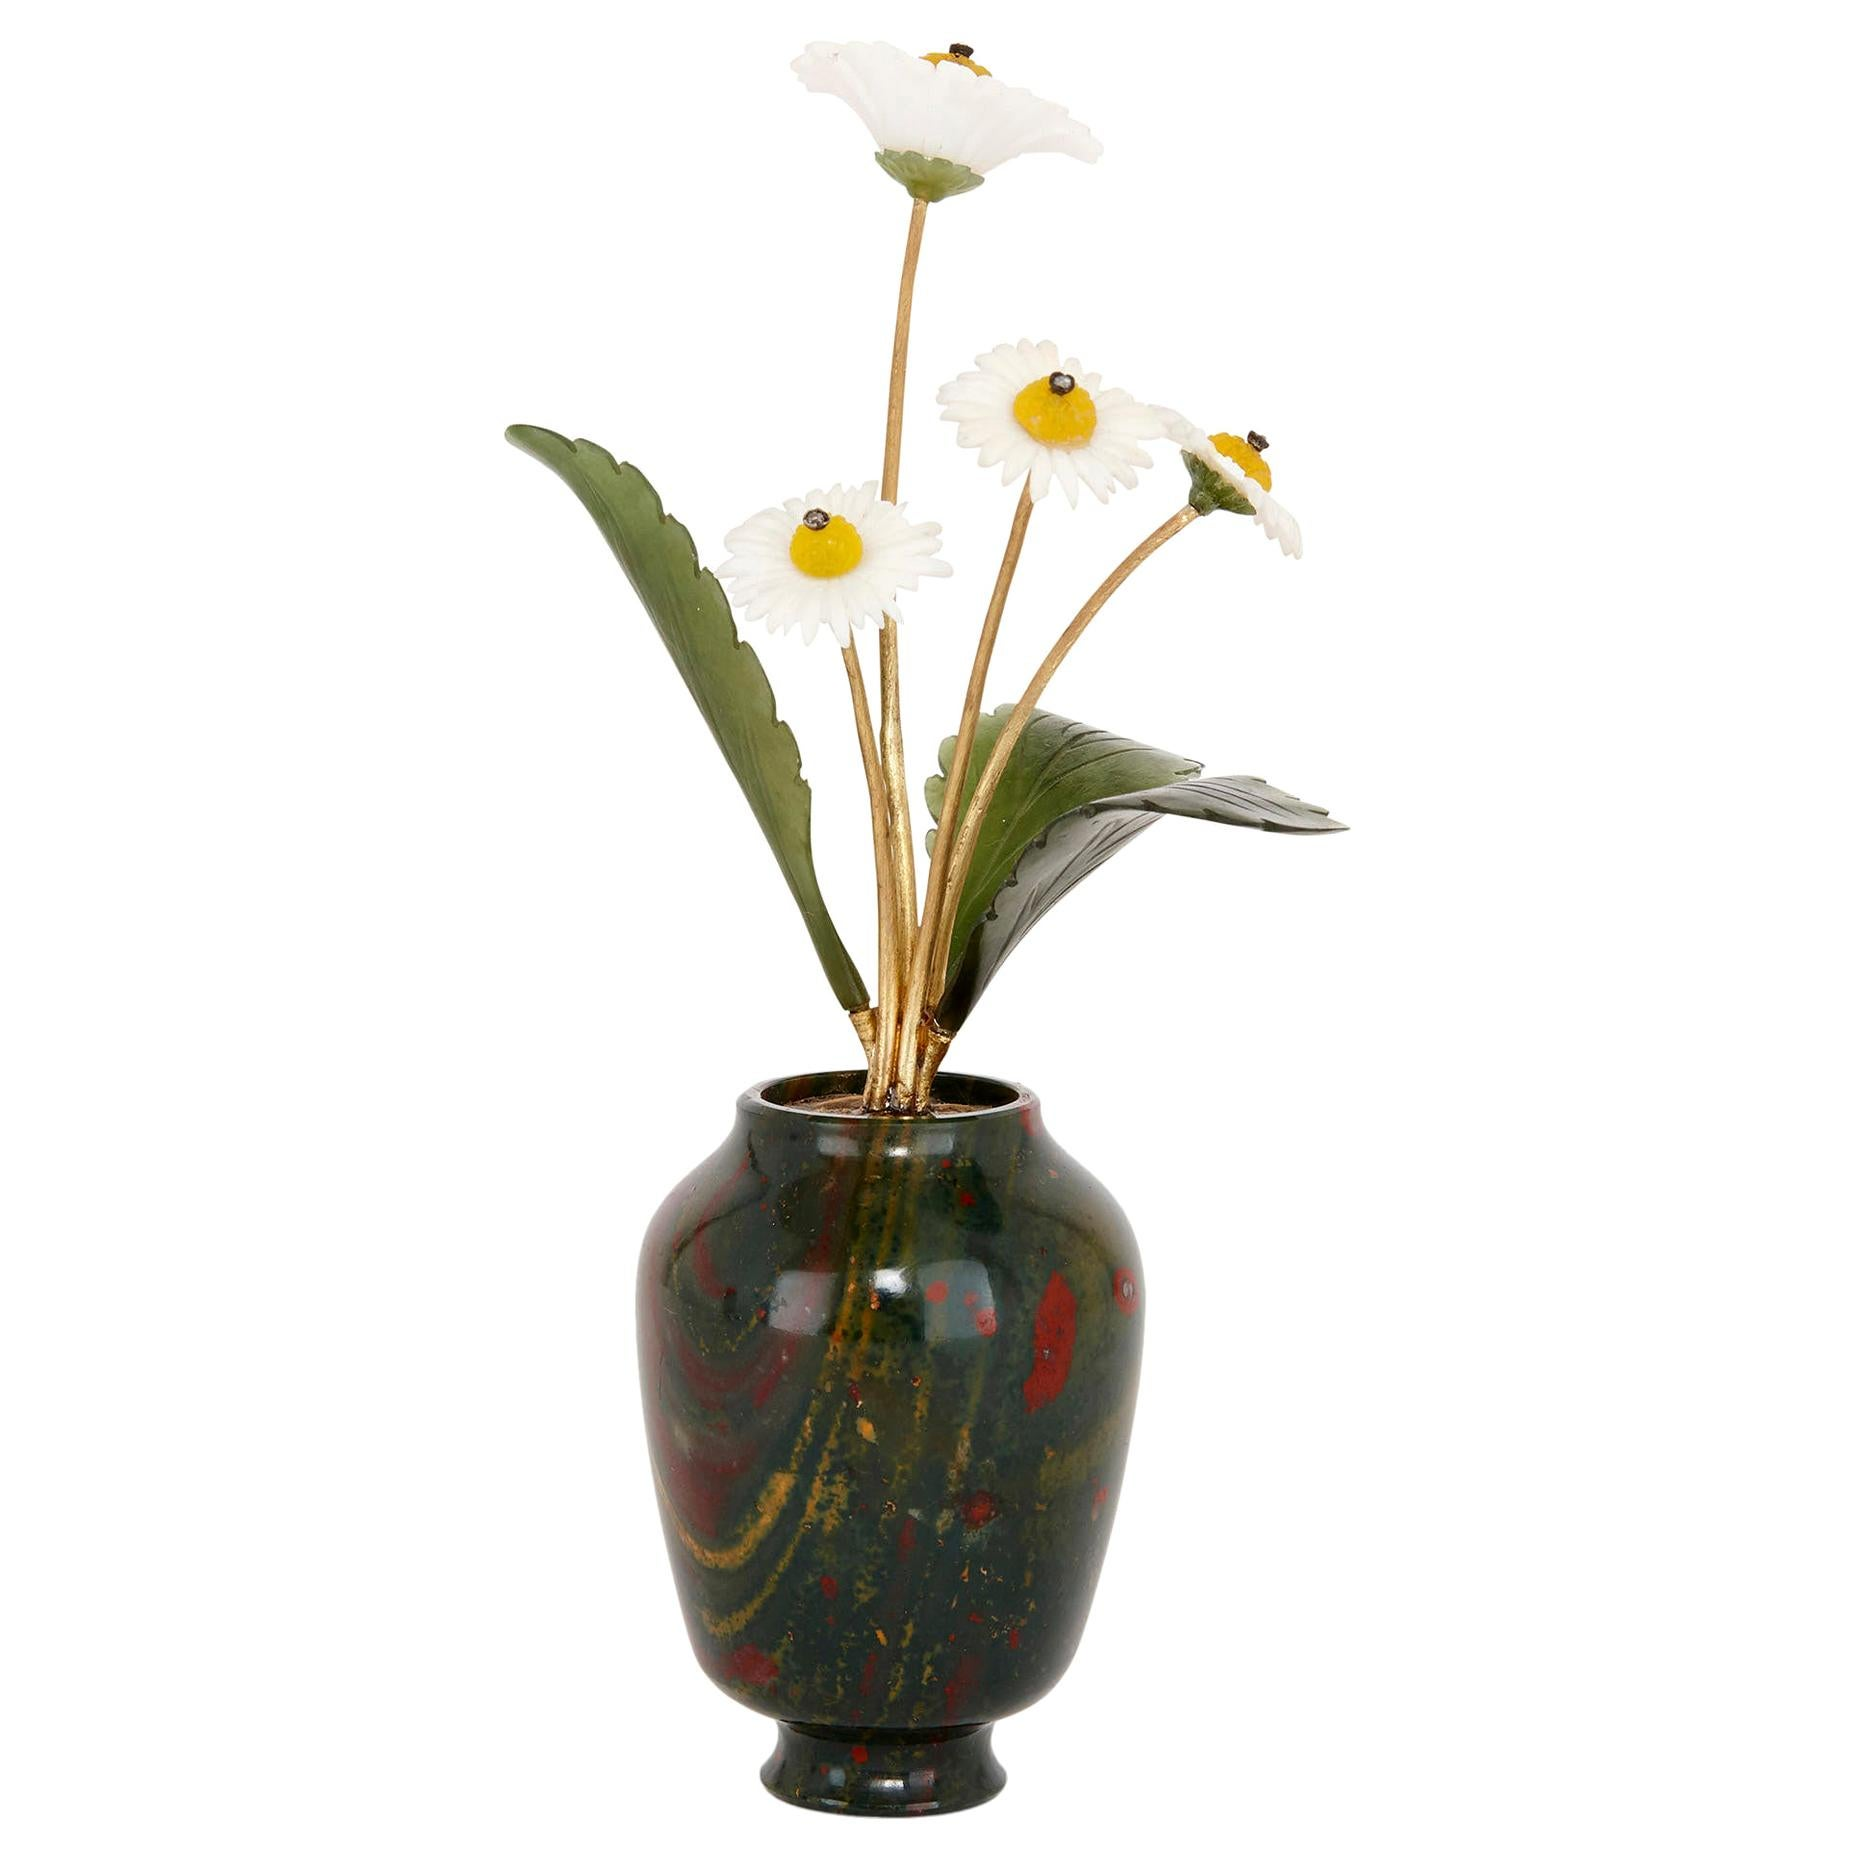 Gold, Jade, and Bloodstone Flower Model in the Style of Fabergé